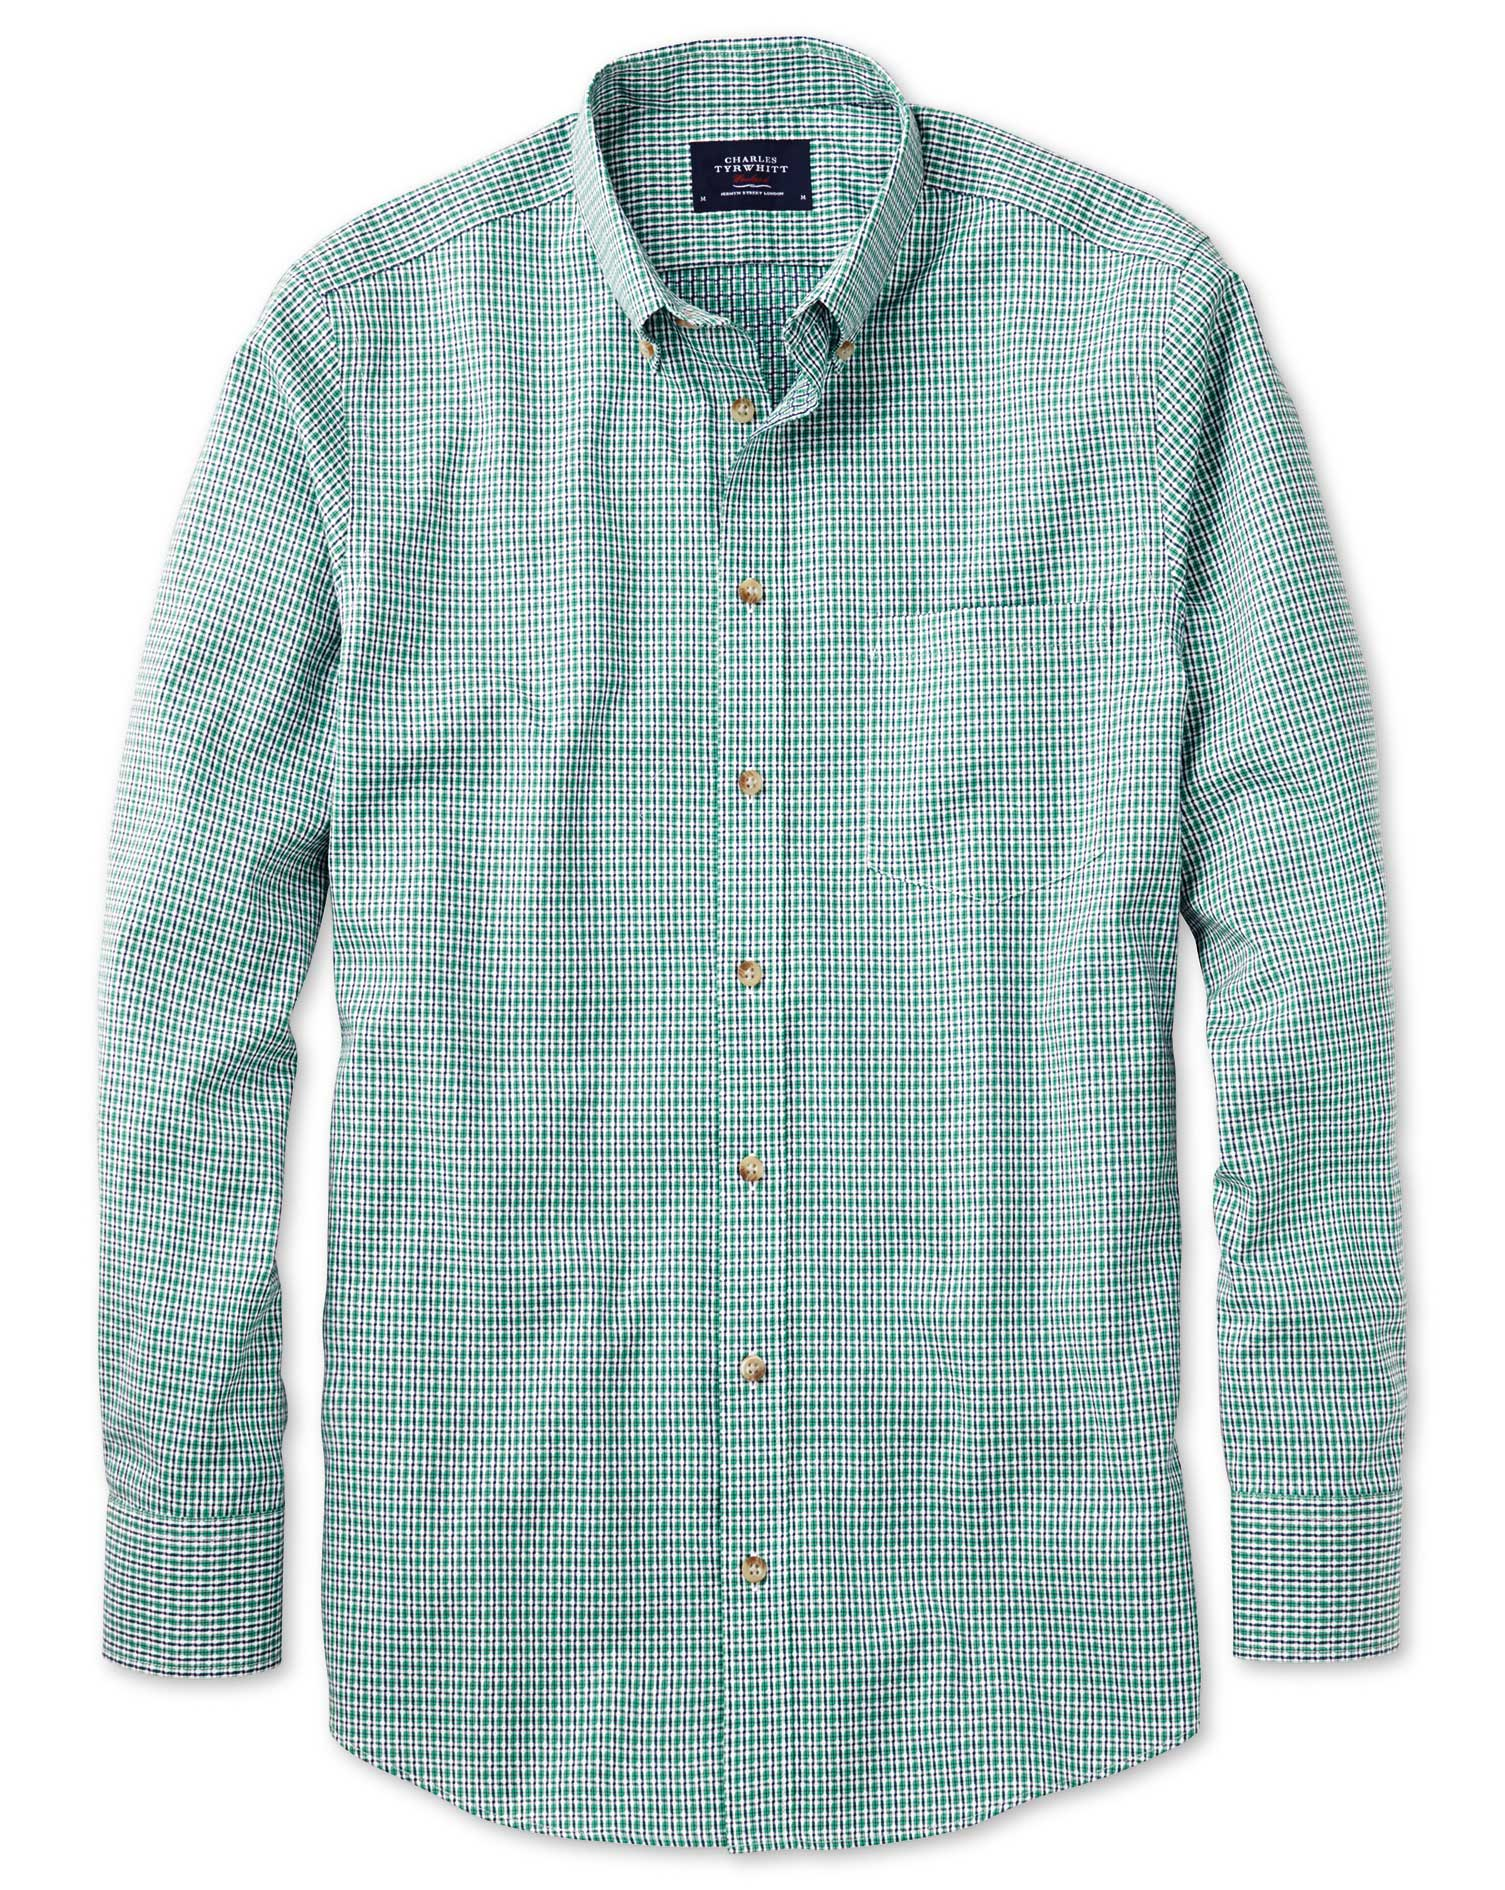 Classic Fit Non-Iron Poplin Green and Navy Check Cotton Shirt Single Cuff Size Large by Charles Tyrw